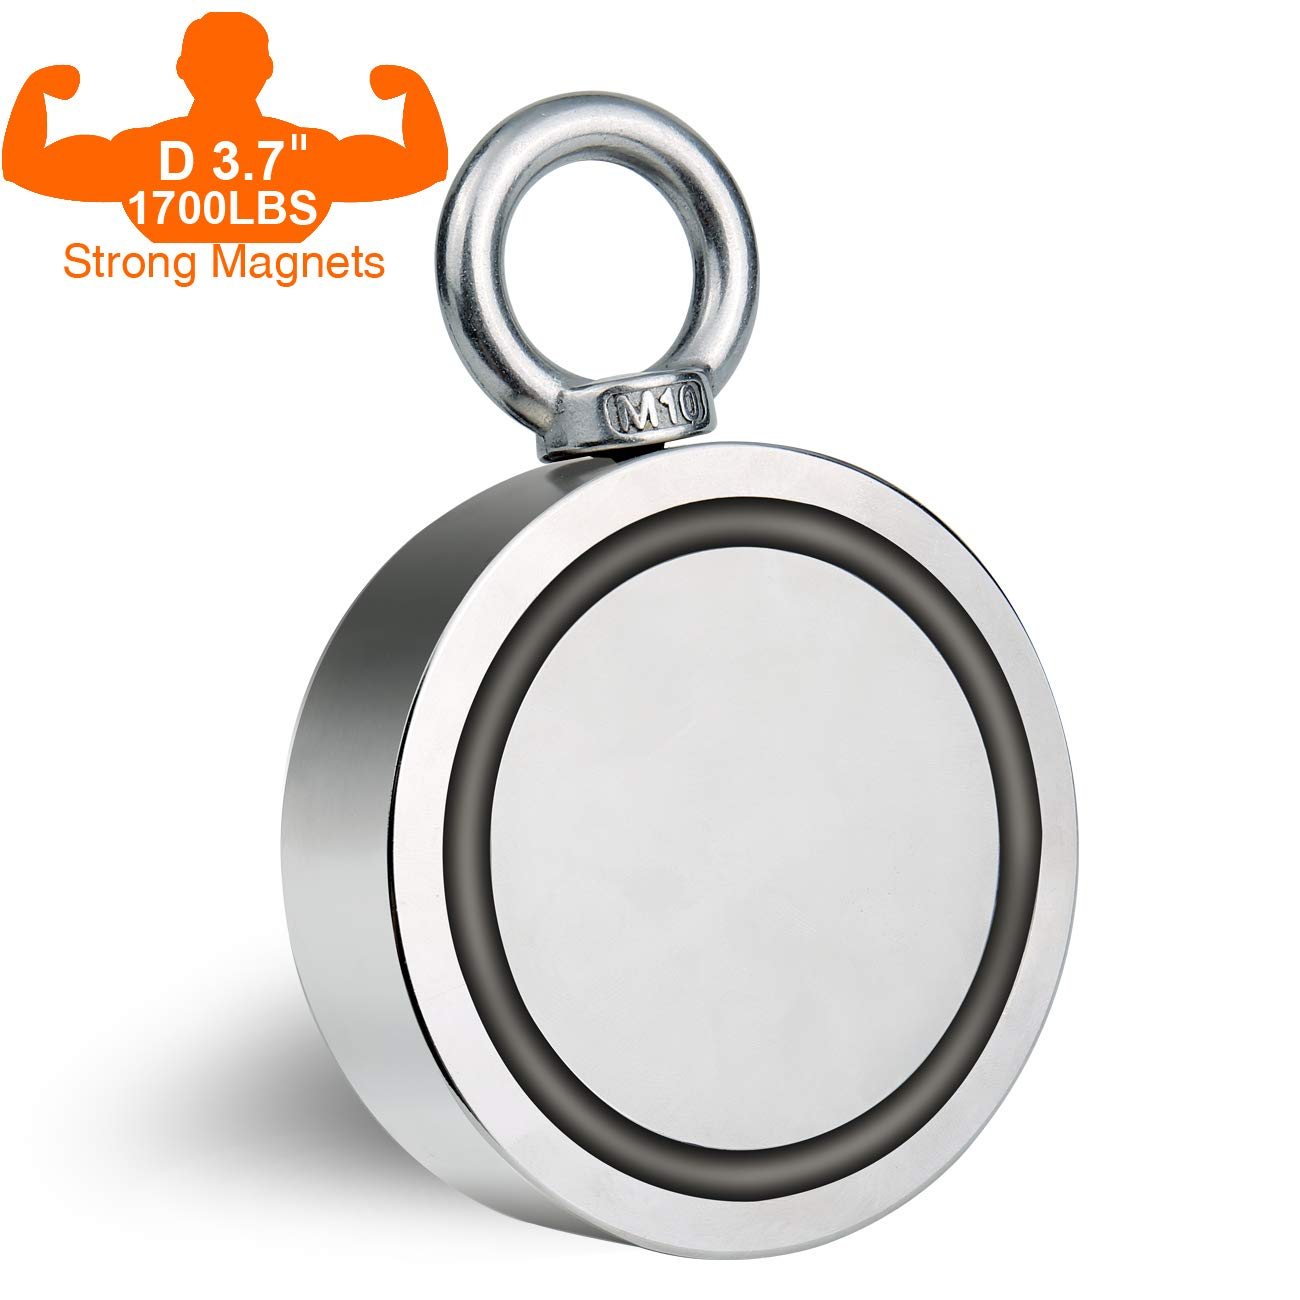 Double Sided Fishing Magnet Large Neodymium Magnet with Eyebolt, Combined 1700 LBS Pulling Force Powerful Magnets for Magnetic Fishing, Treasure Hunting Underwater - 3.7'' (94mm) Diameter